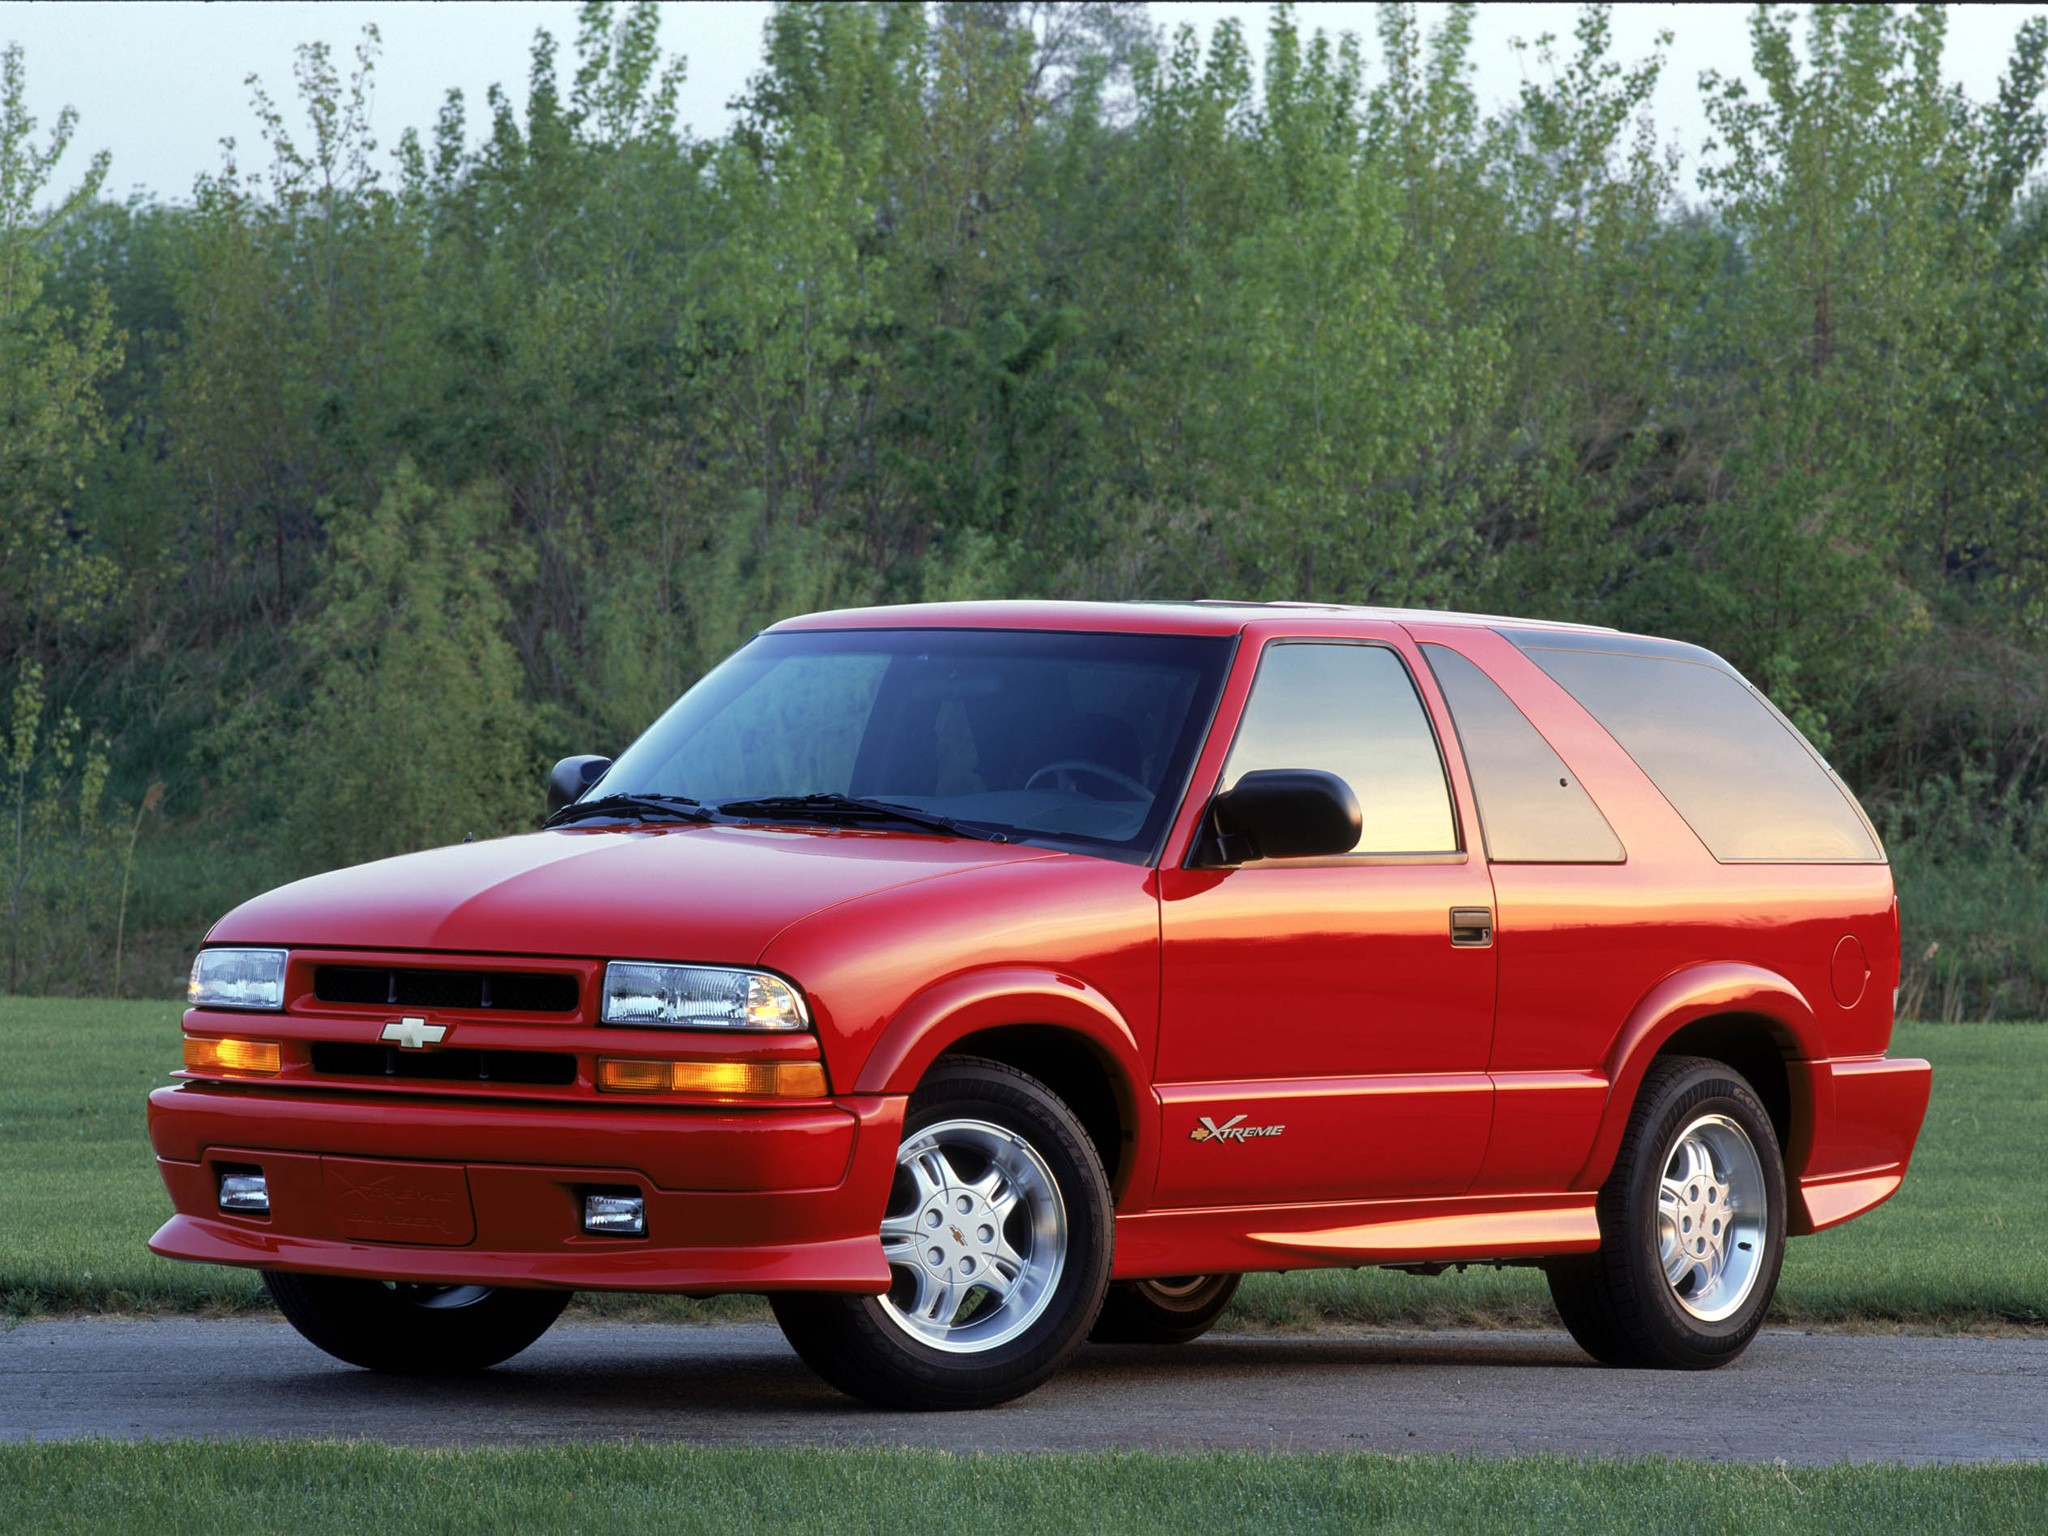 CHEVROLET Blazer 3 doors specs & photos - 1995, 1996, 1997 ...